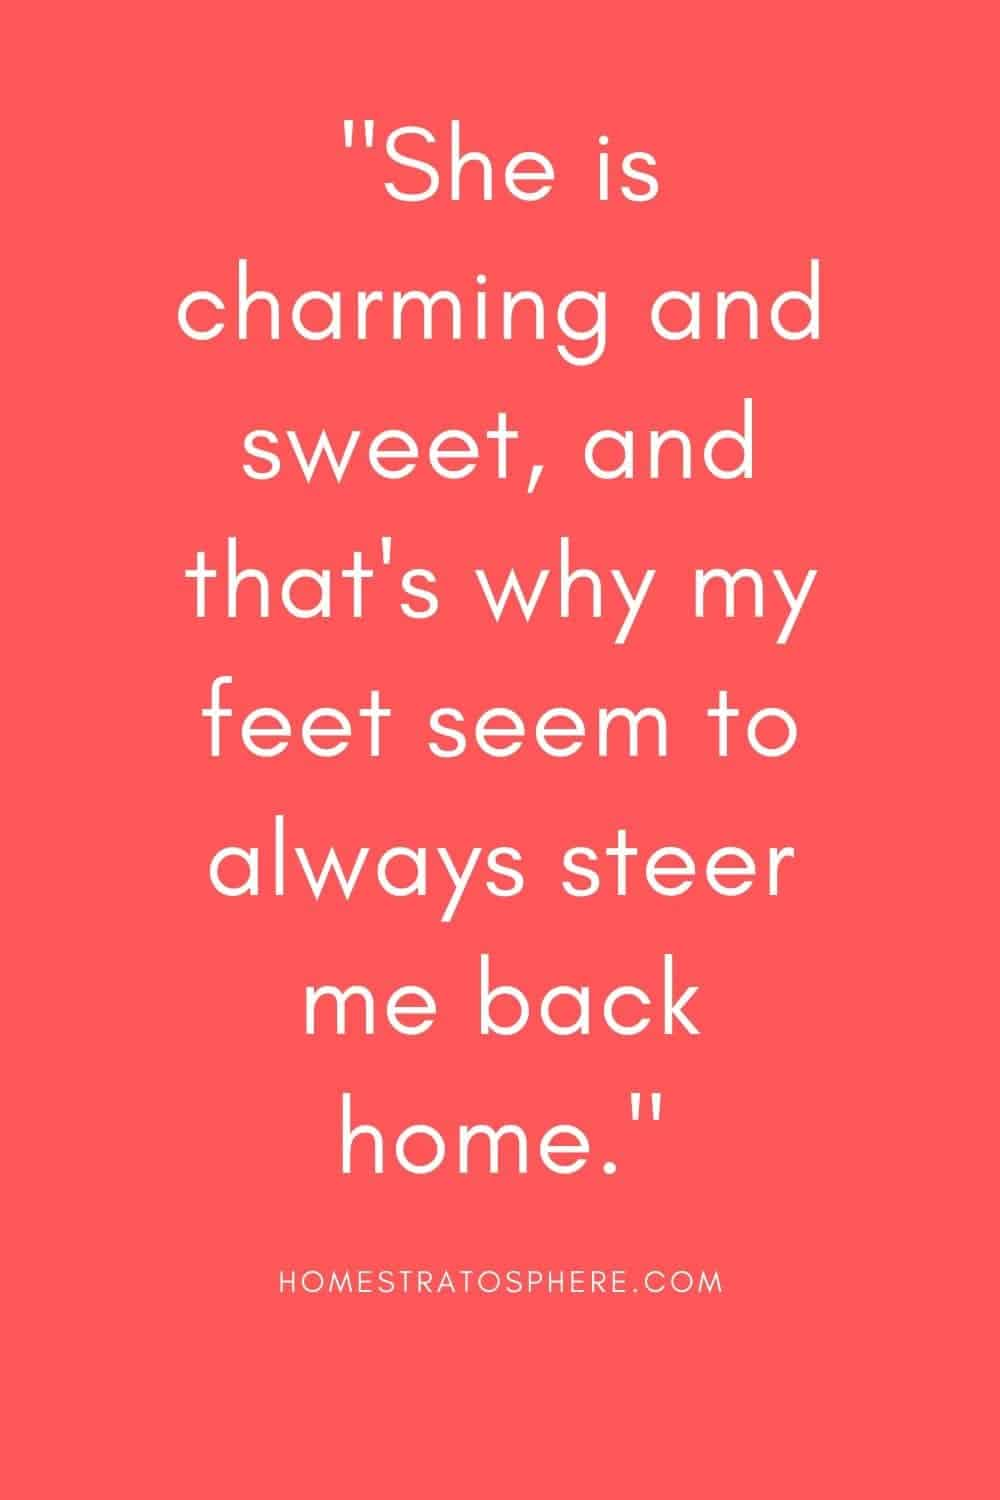 """""""She is charming and sweet, and that's why my feet seem to always steer me back home."""""""